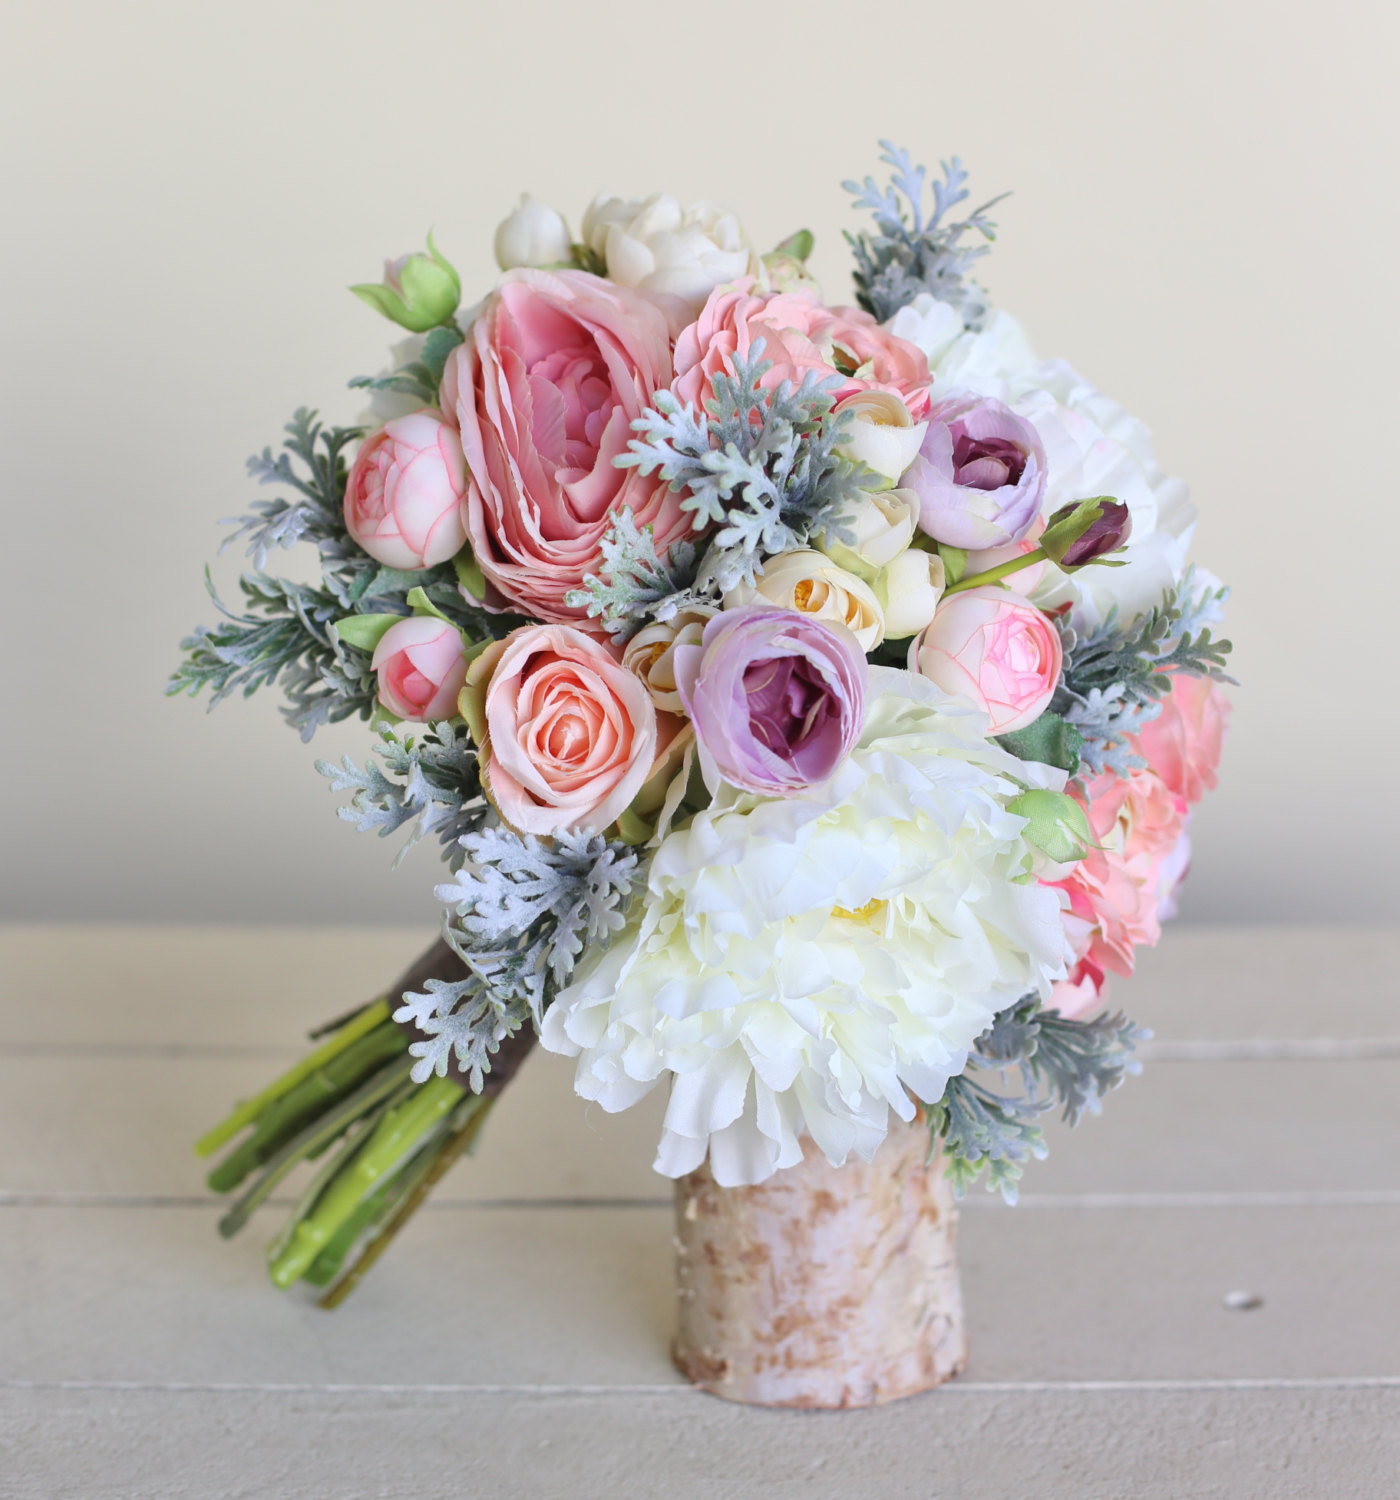 Wedding Flower Bouquets Ideas: Wedding Bridal Bouquet Inspiration